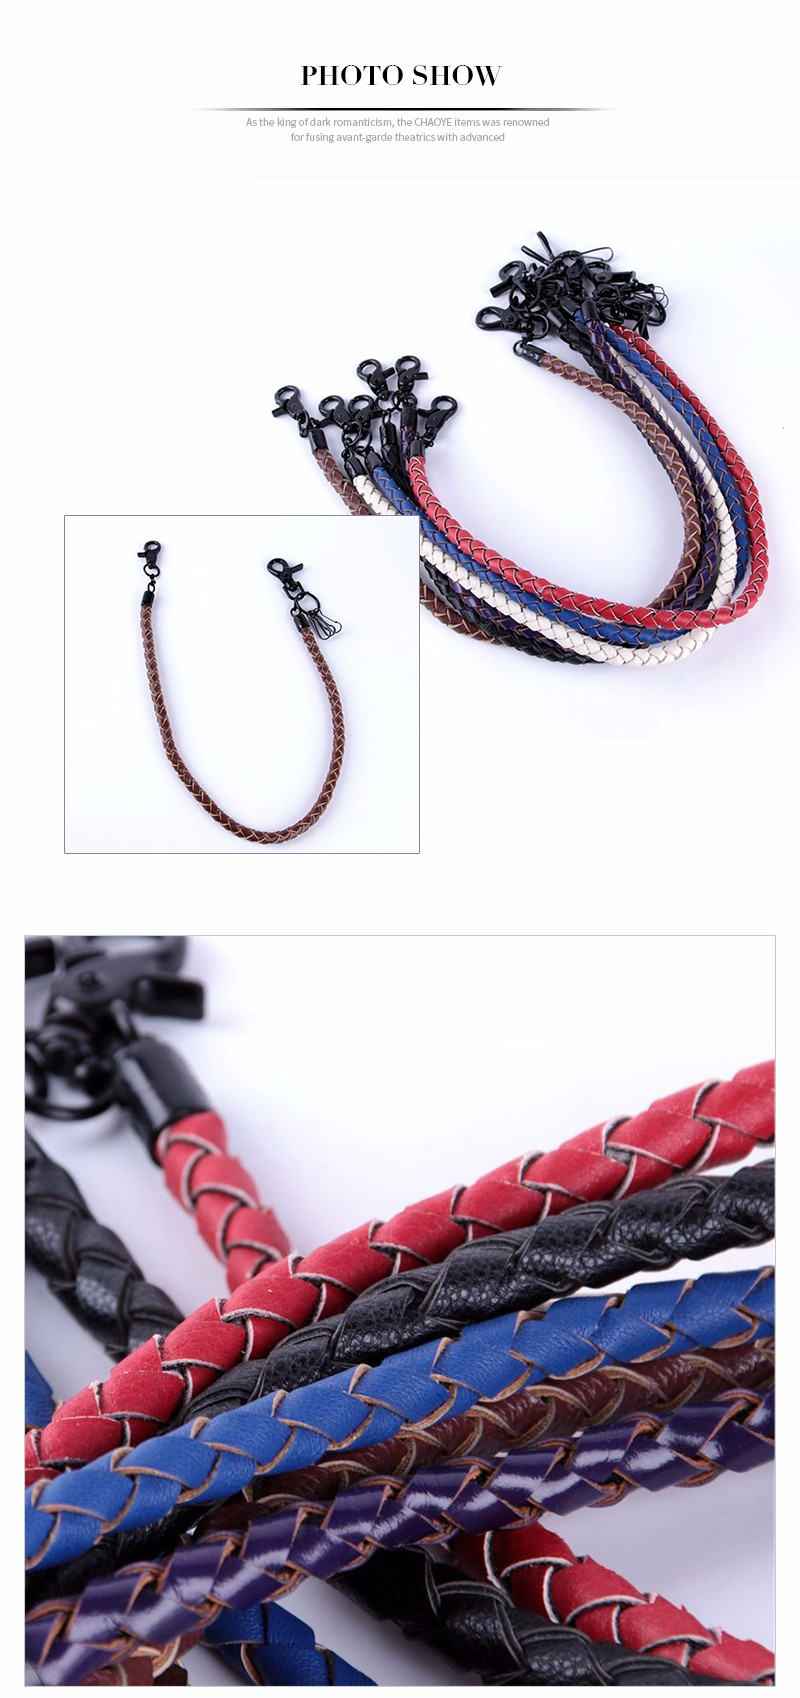 CHAOYE 2017 Solid Color Leather Jeans Chain Keychain Punk Rock Style Pants Chain Key Ring Vintage Women Bag Charm Gift for Men